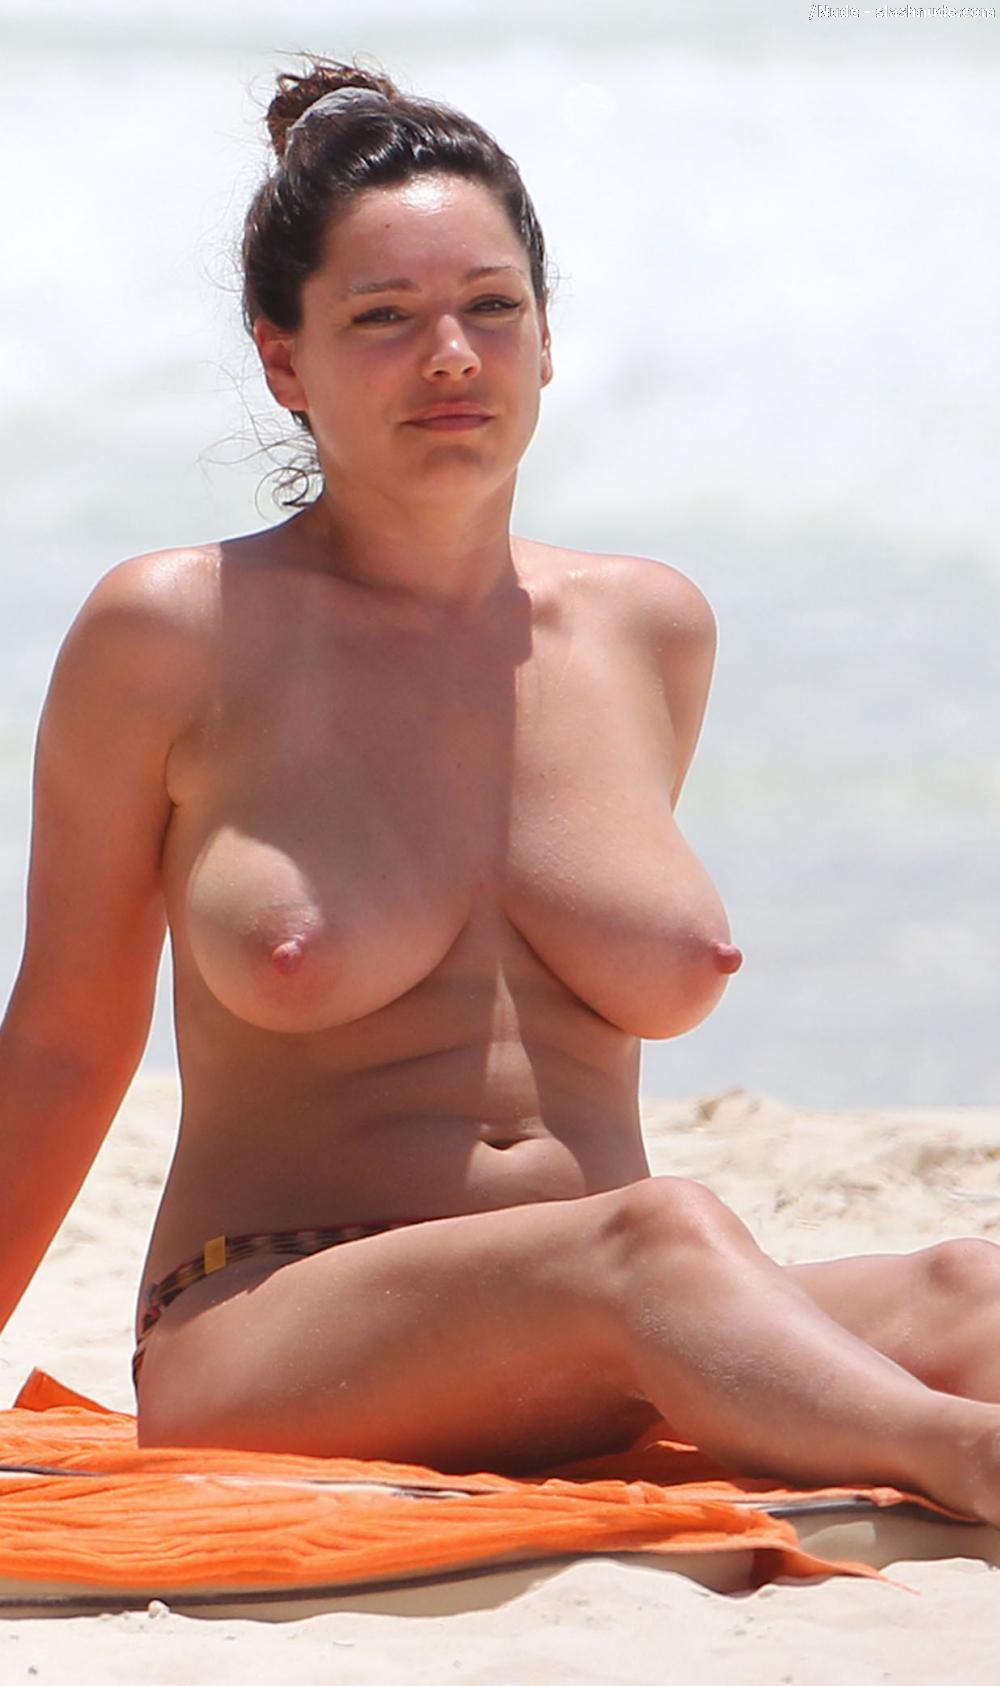 Remarkable, rather Kelly brook topless mexico